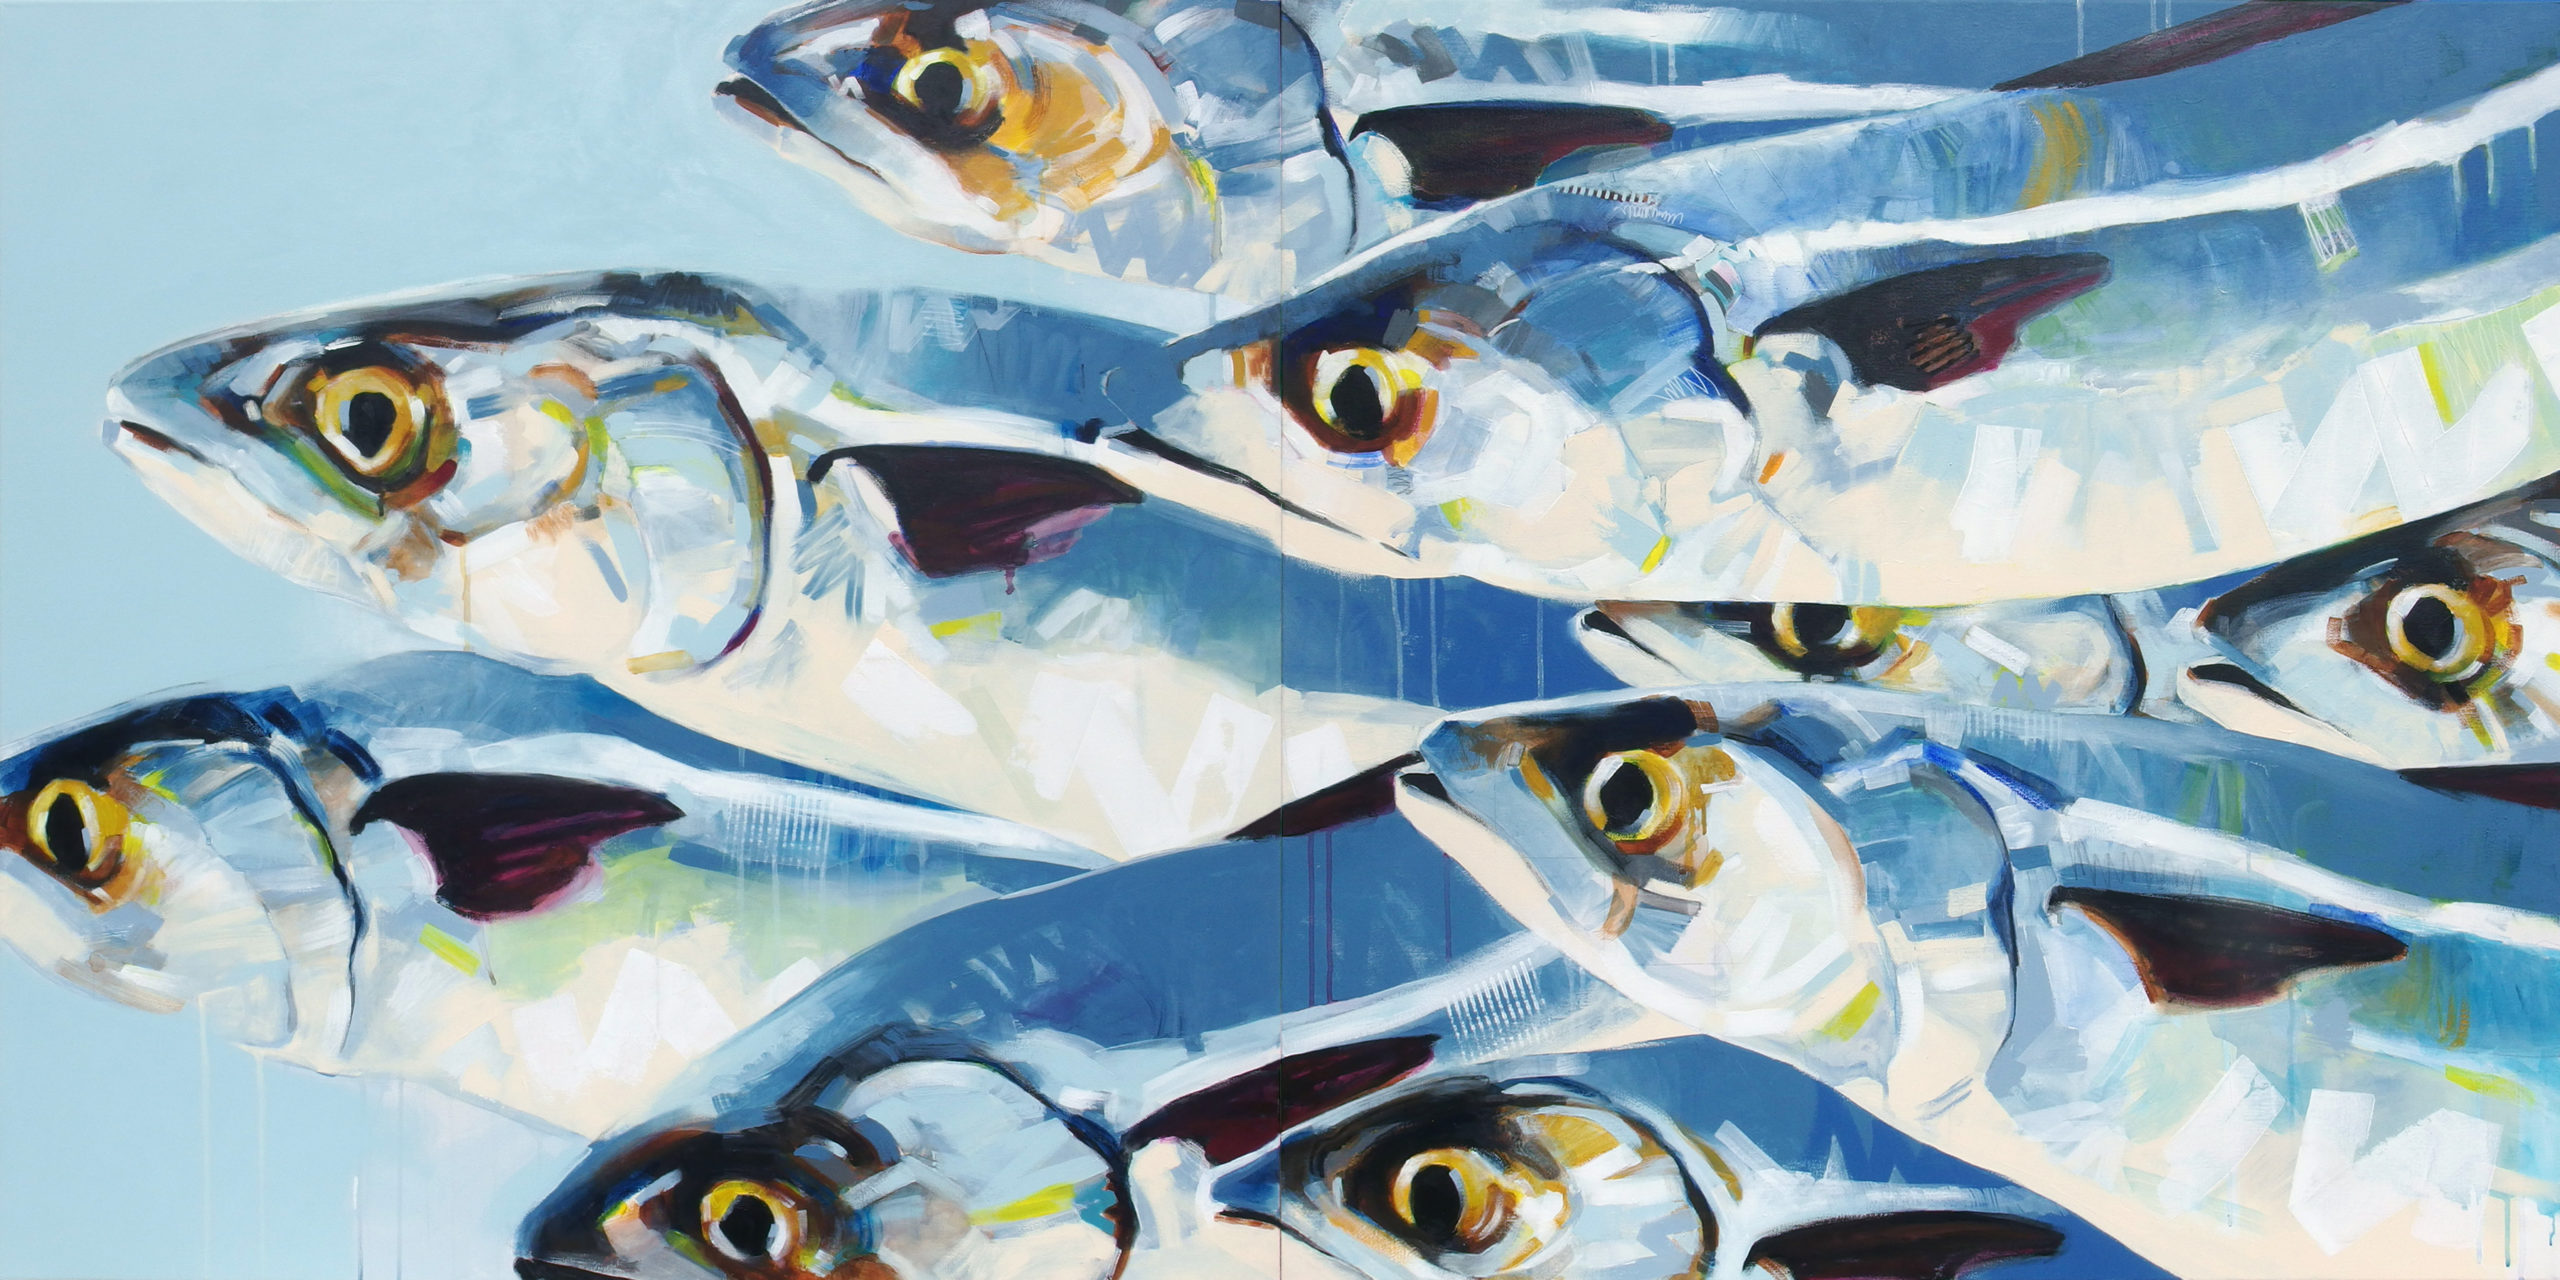 Diptyque Fishes in a hurry